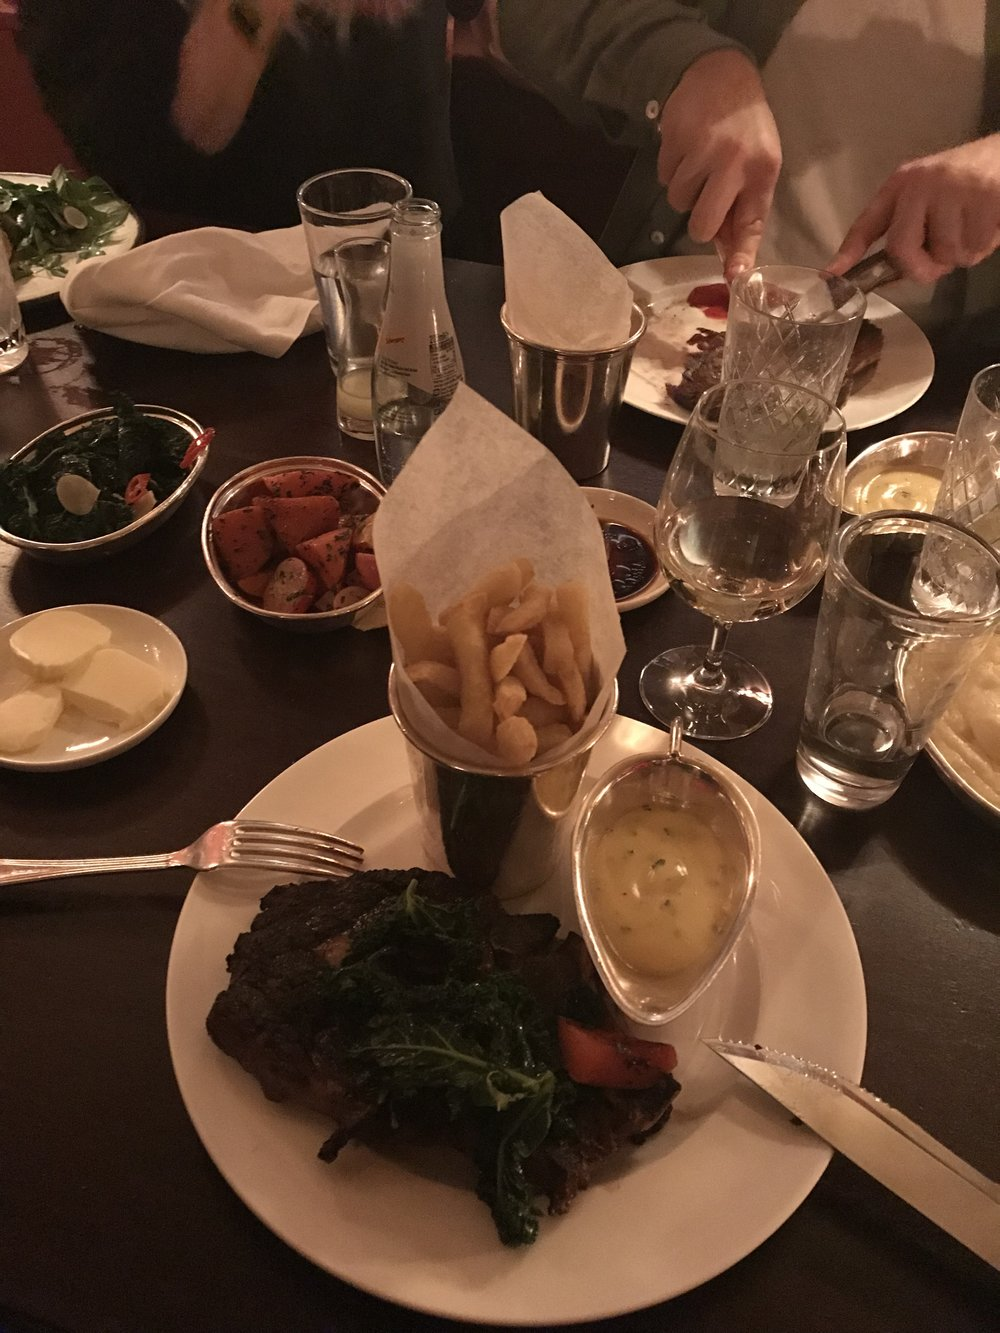 Most of us took the steak for our main - the bearnaise sauce was delicious!